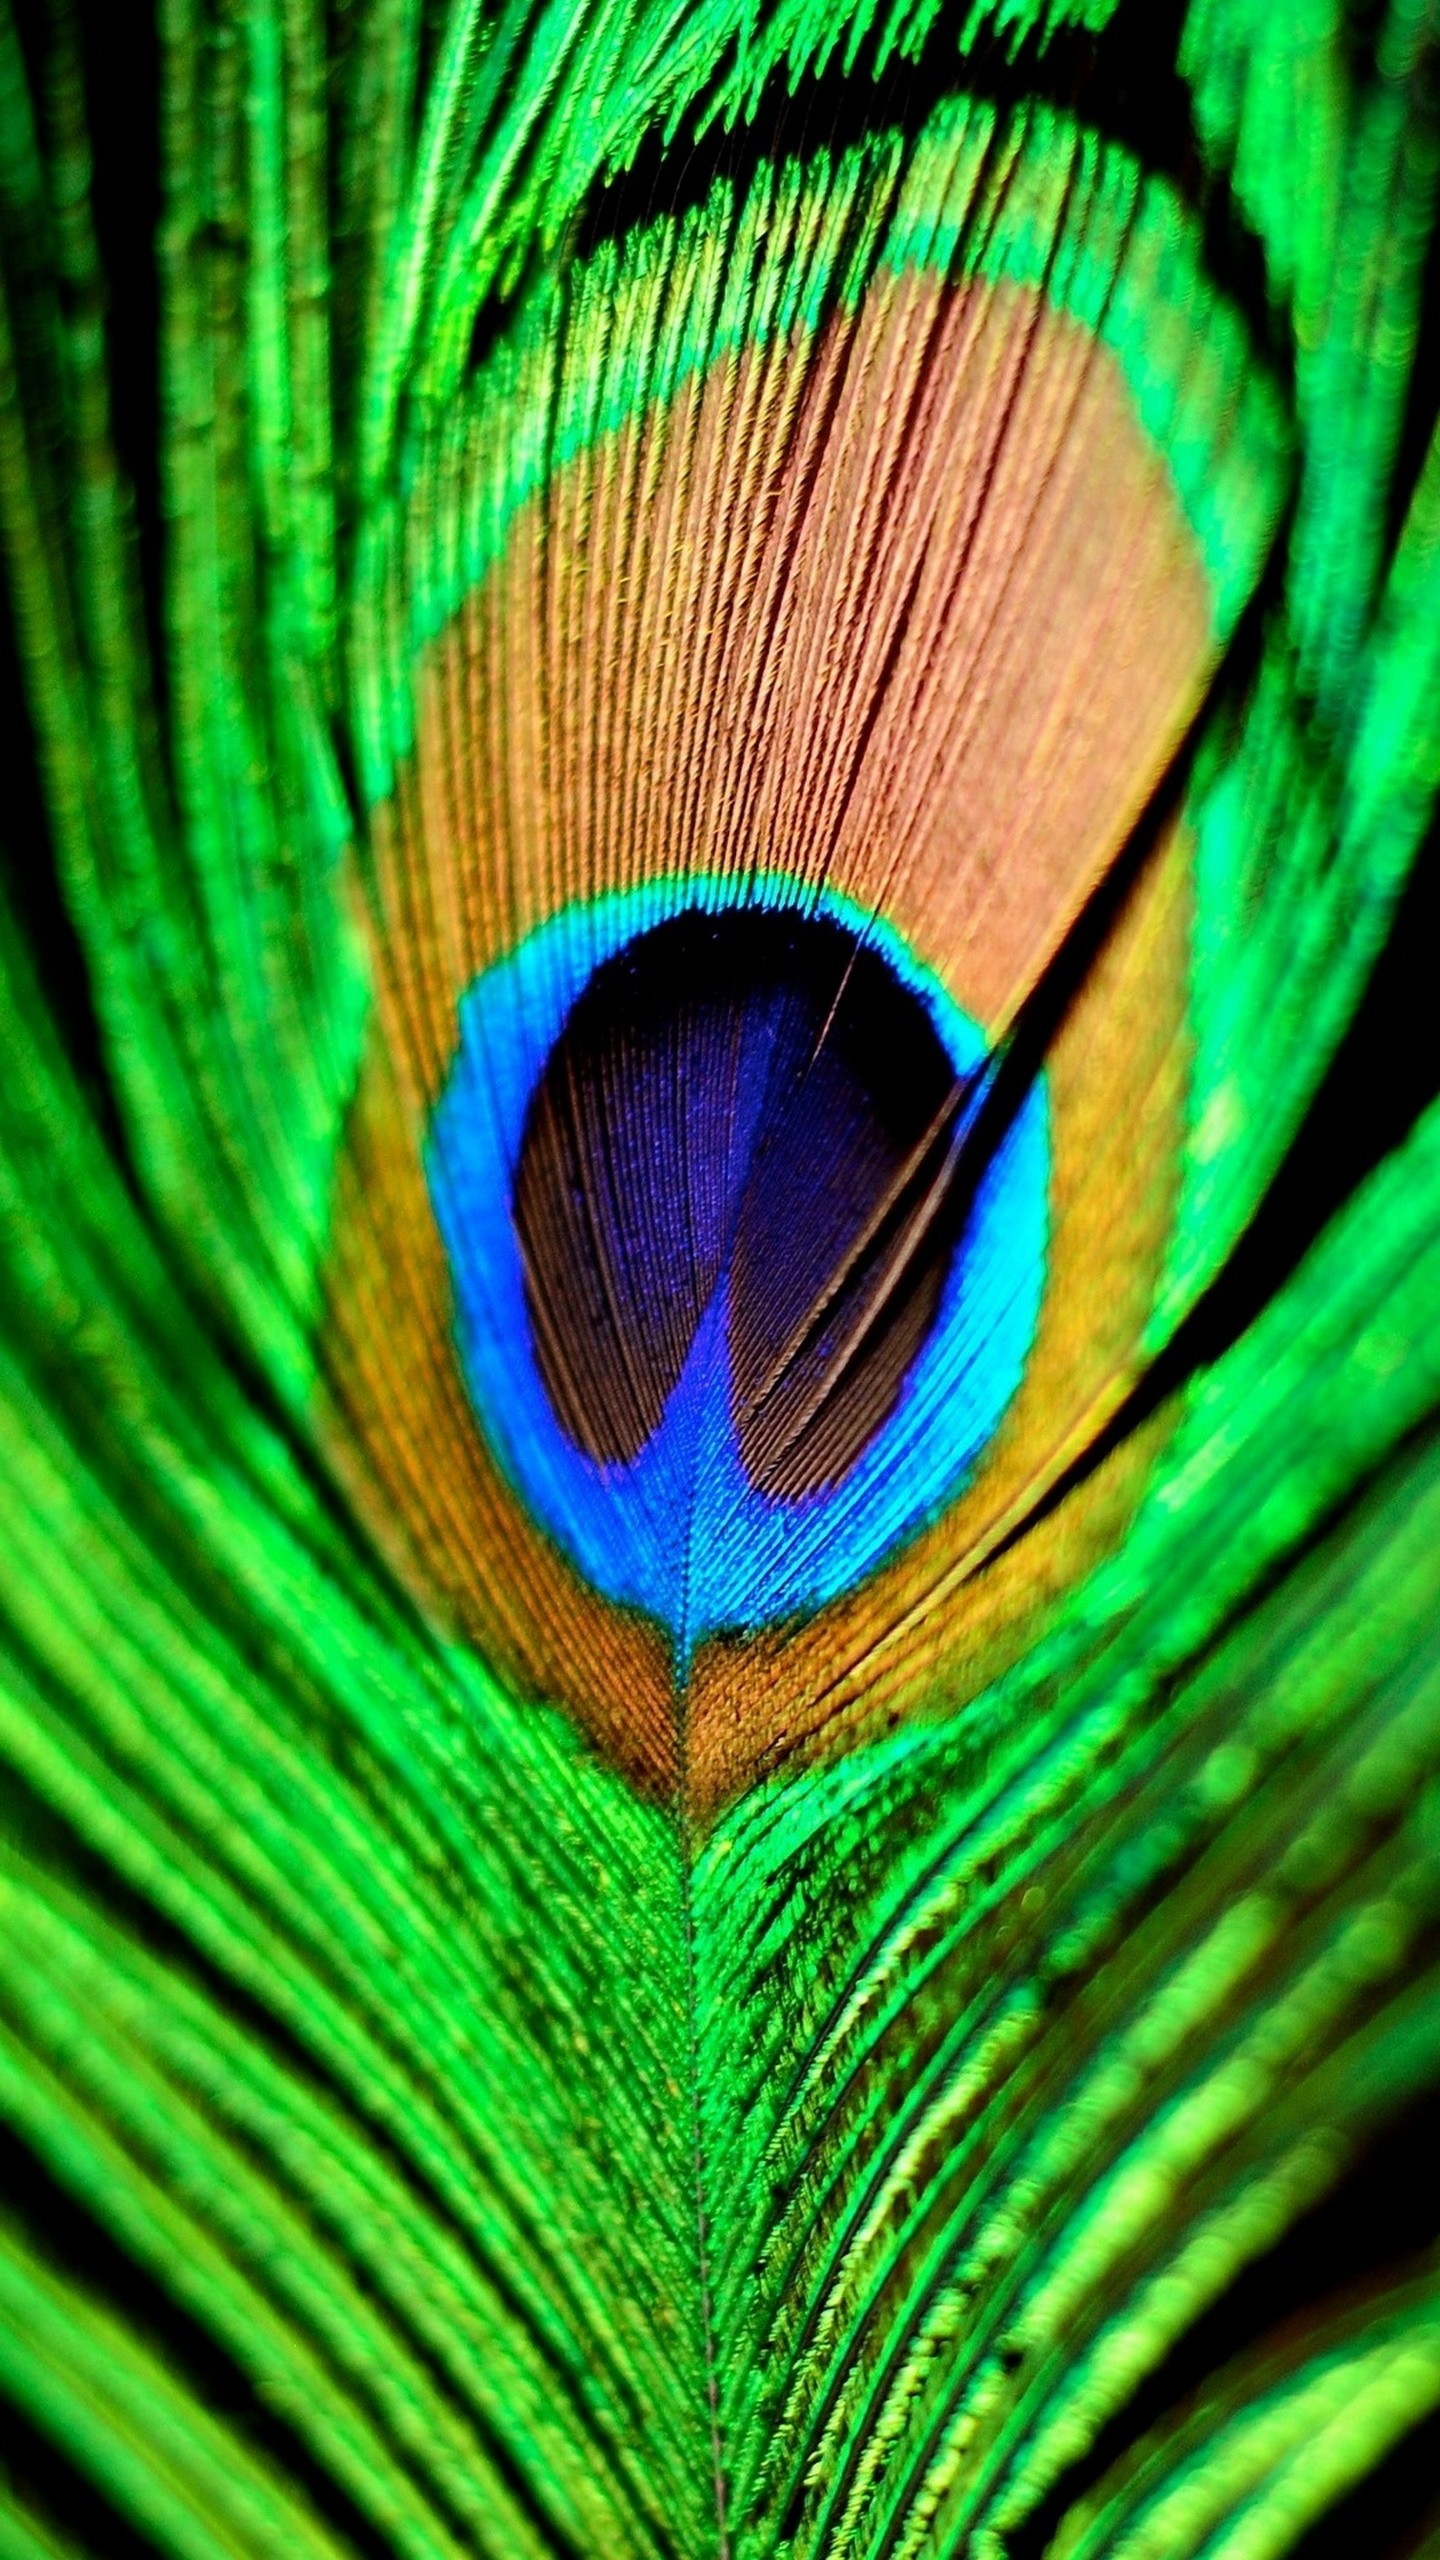 Wallpapers Of Peacock Feathers Hd 2018